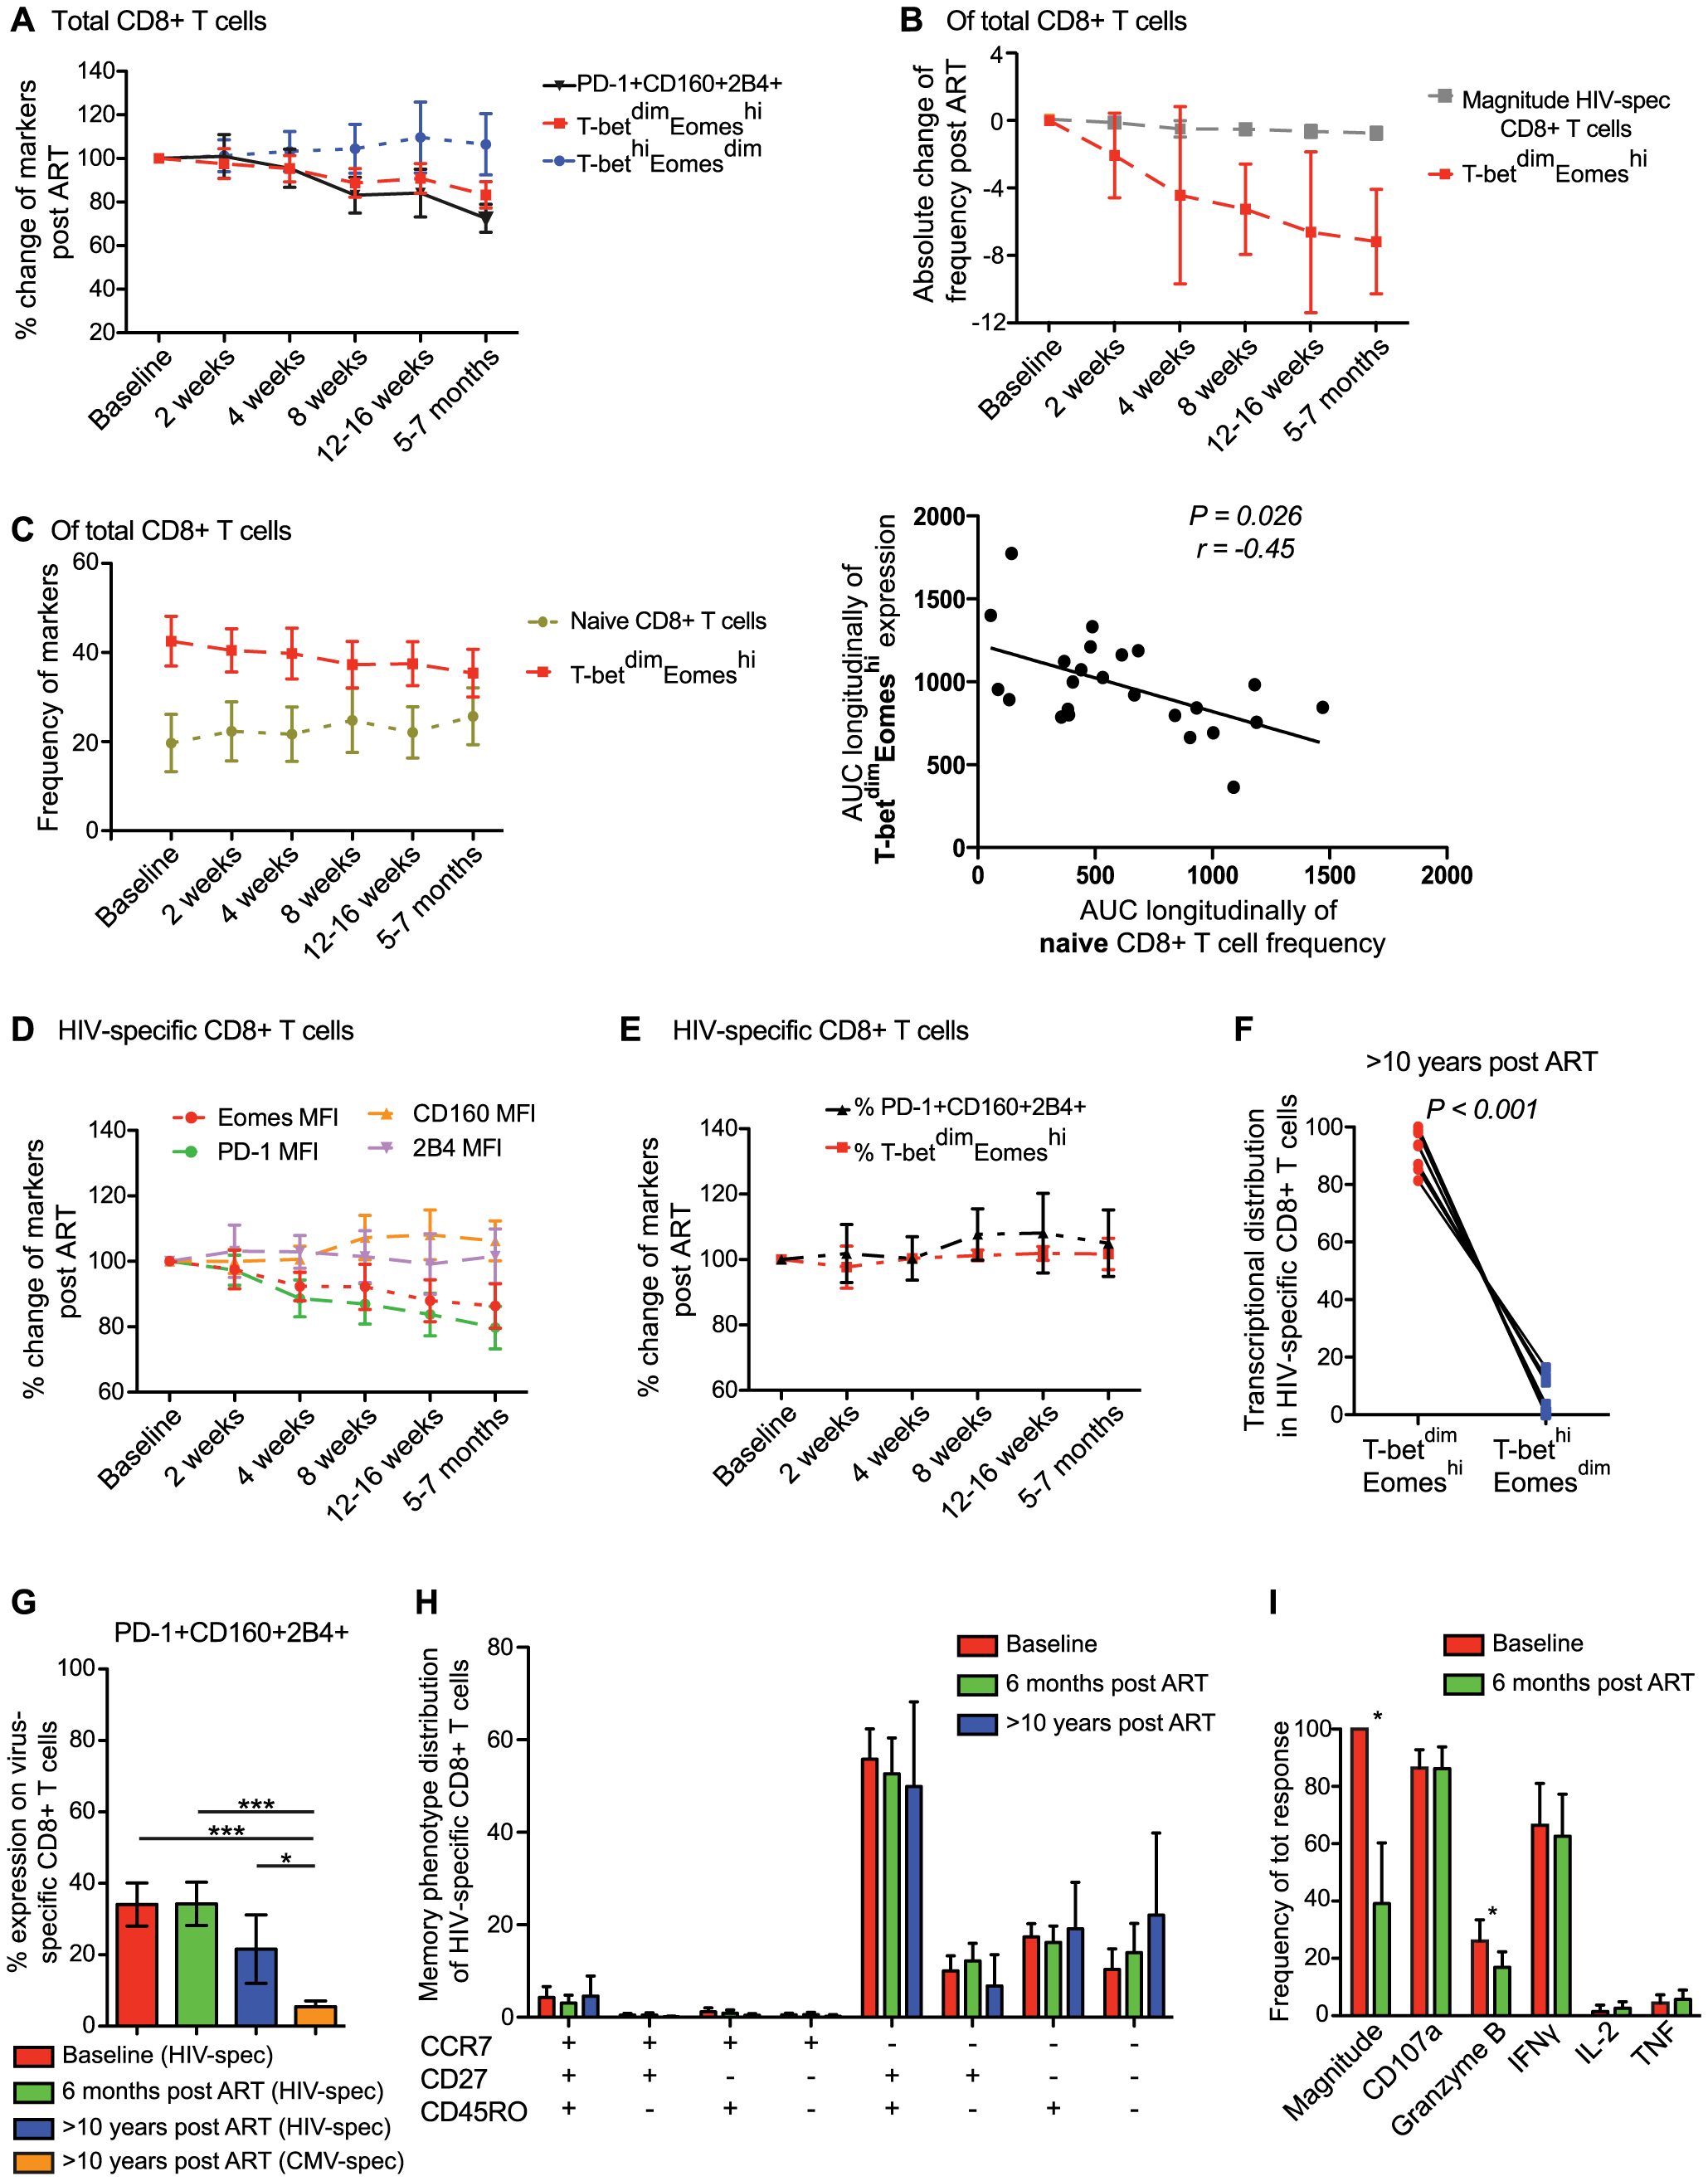 Longitudinal characterization of CD8+ T cell exhaustion and T-bet/Eomes expression following ART initiation.